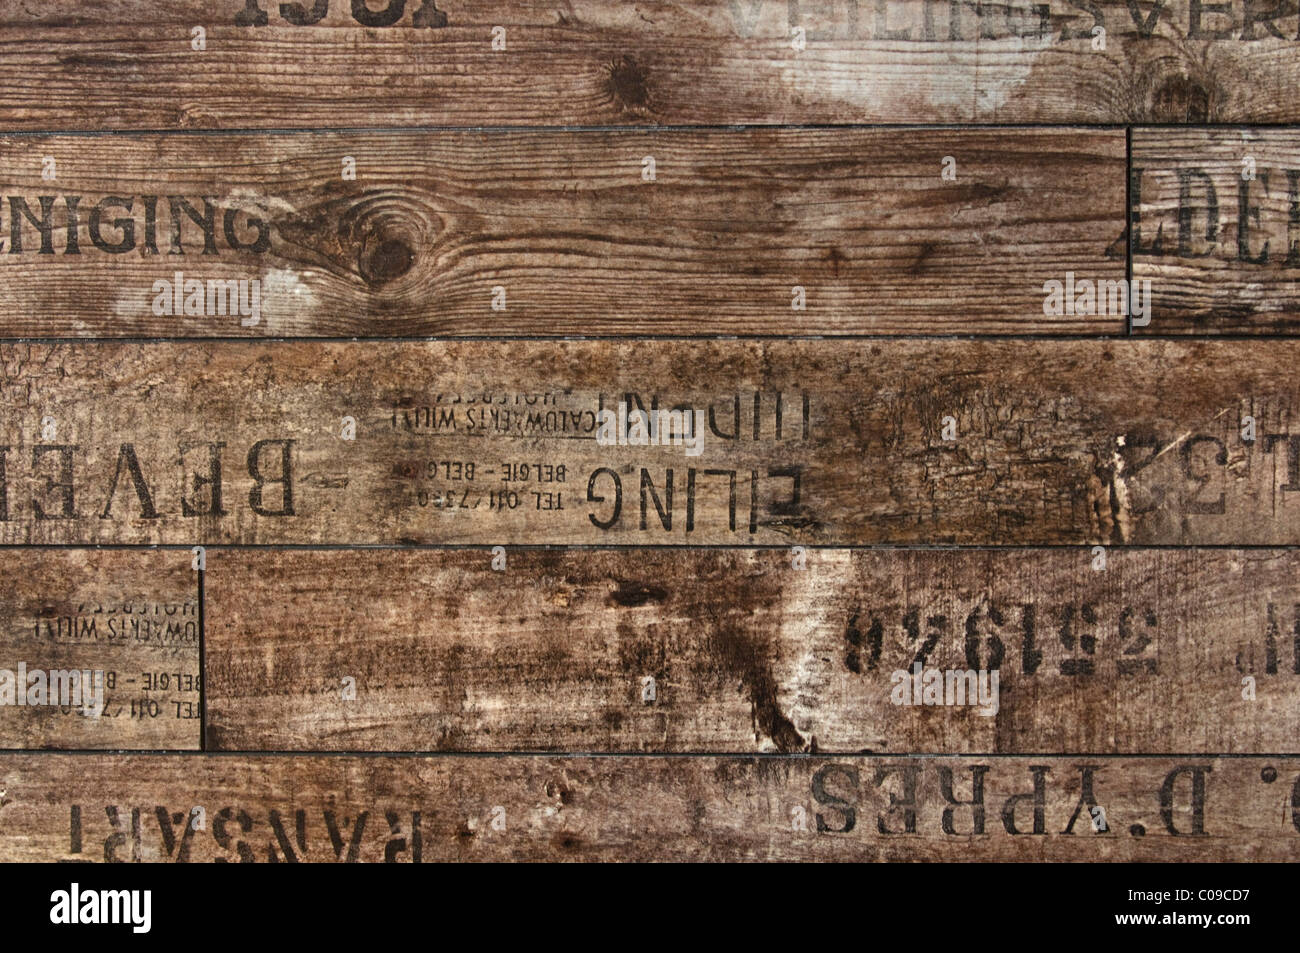 Wooden planks with stamp printing, background - Stock Image